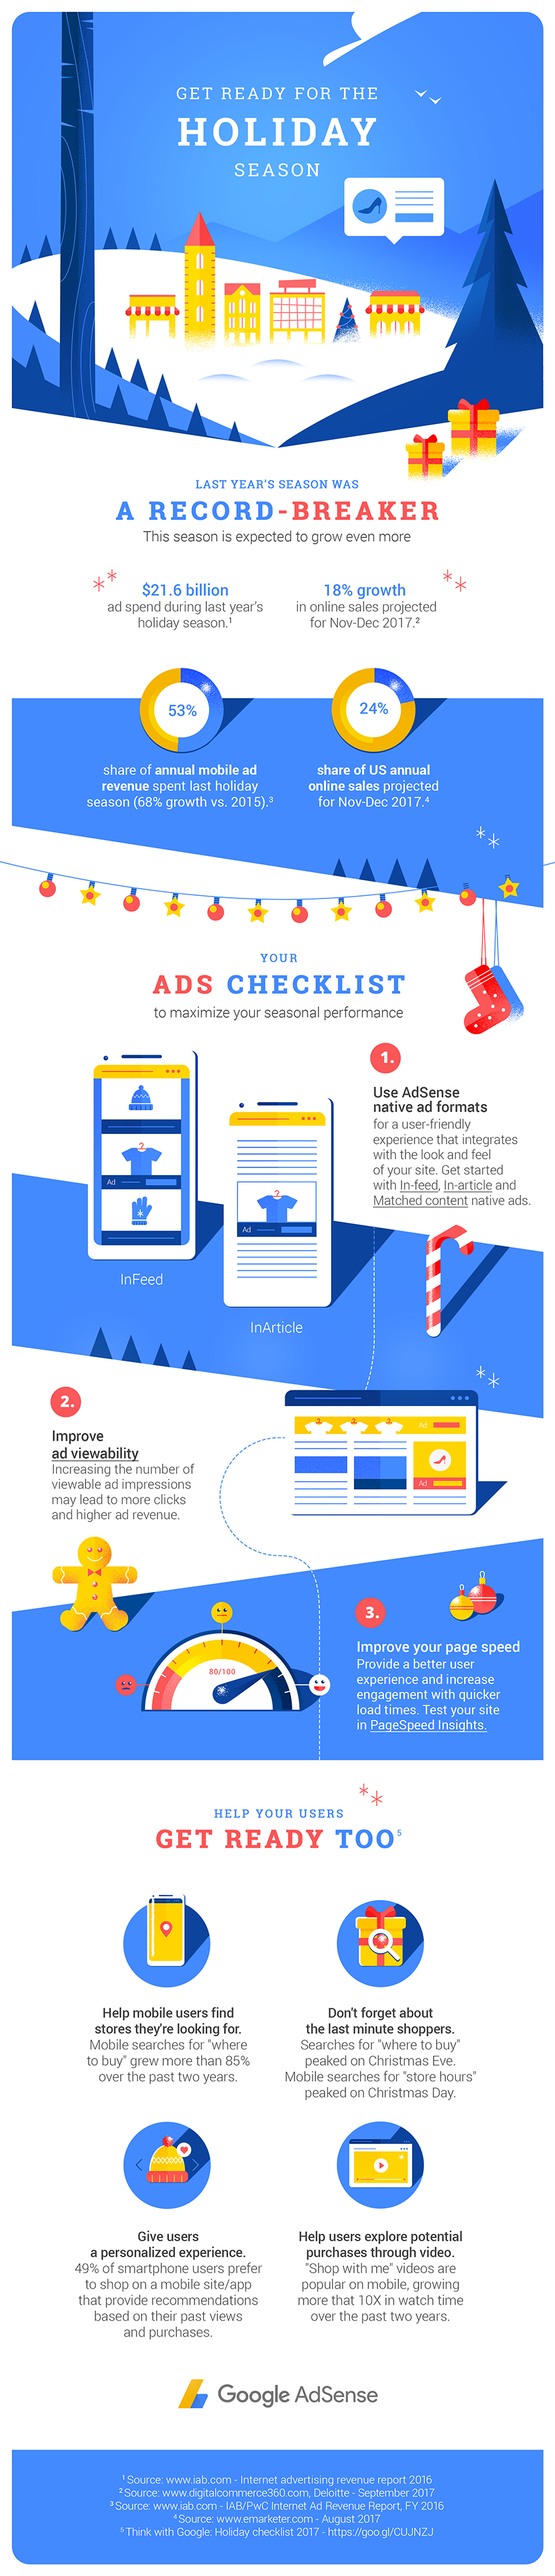 Holiday Season AdSense Tips - 3 Ways to Get Ready for the Busy Online Holiday Shopping Season (INFOGRAPHIC)